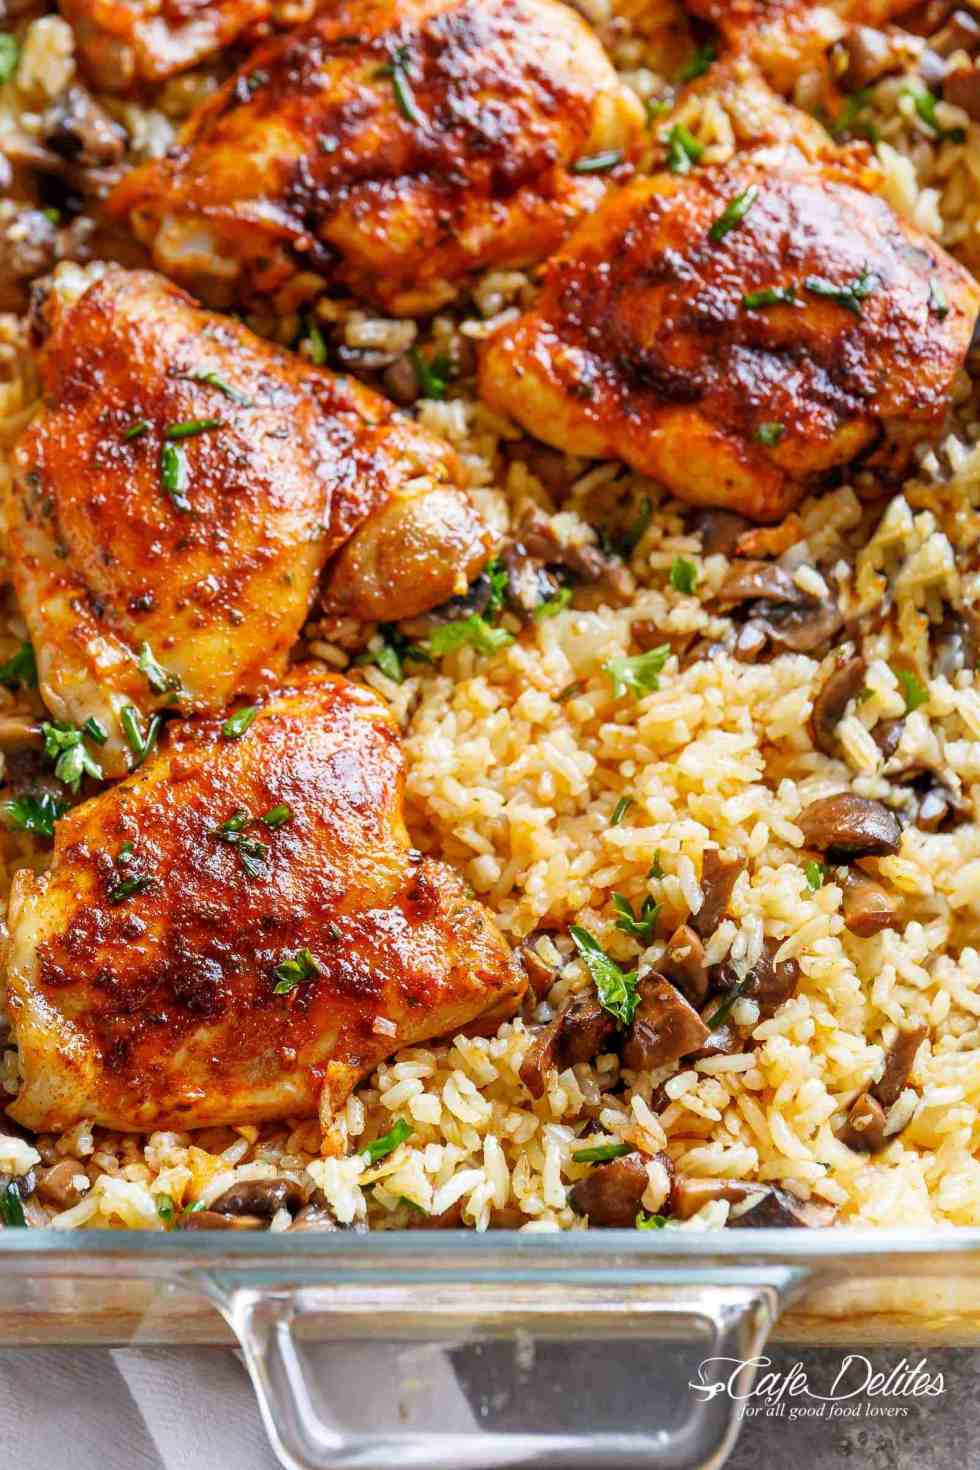 Oven Baked Chicken Recipe  Oven Baked Chicken And Rice Cafe Delites